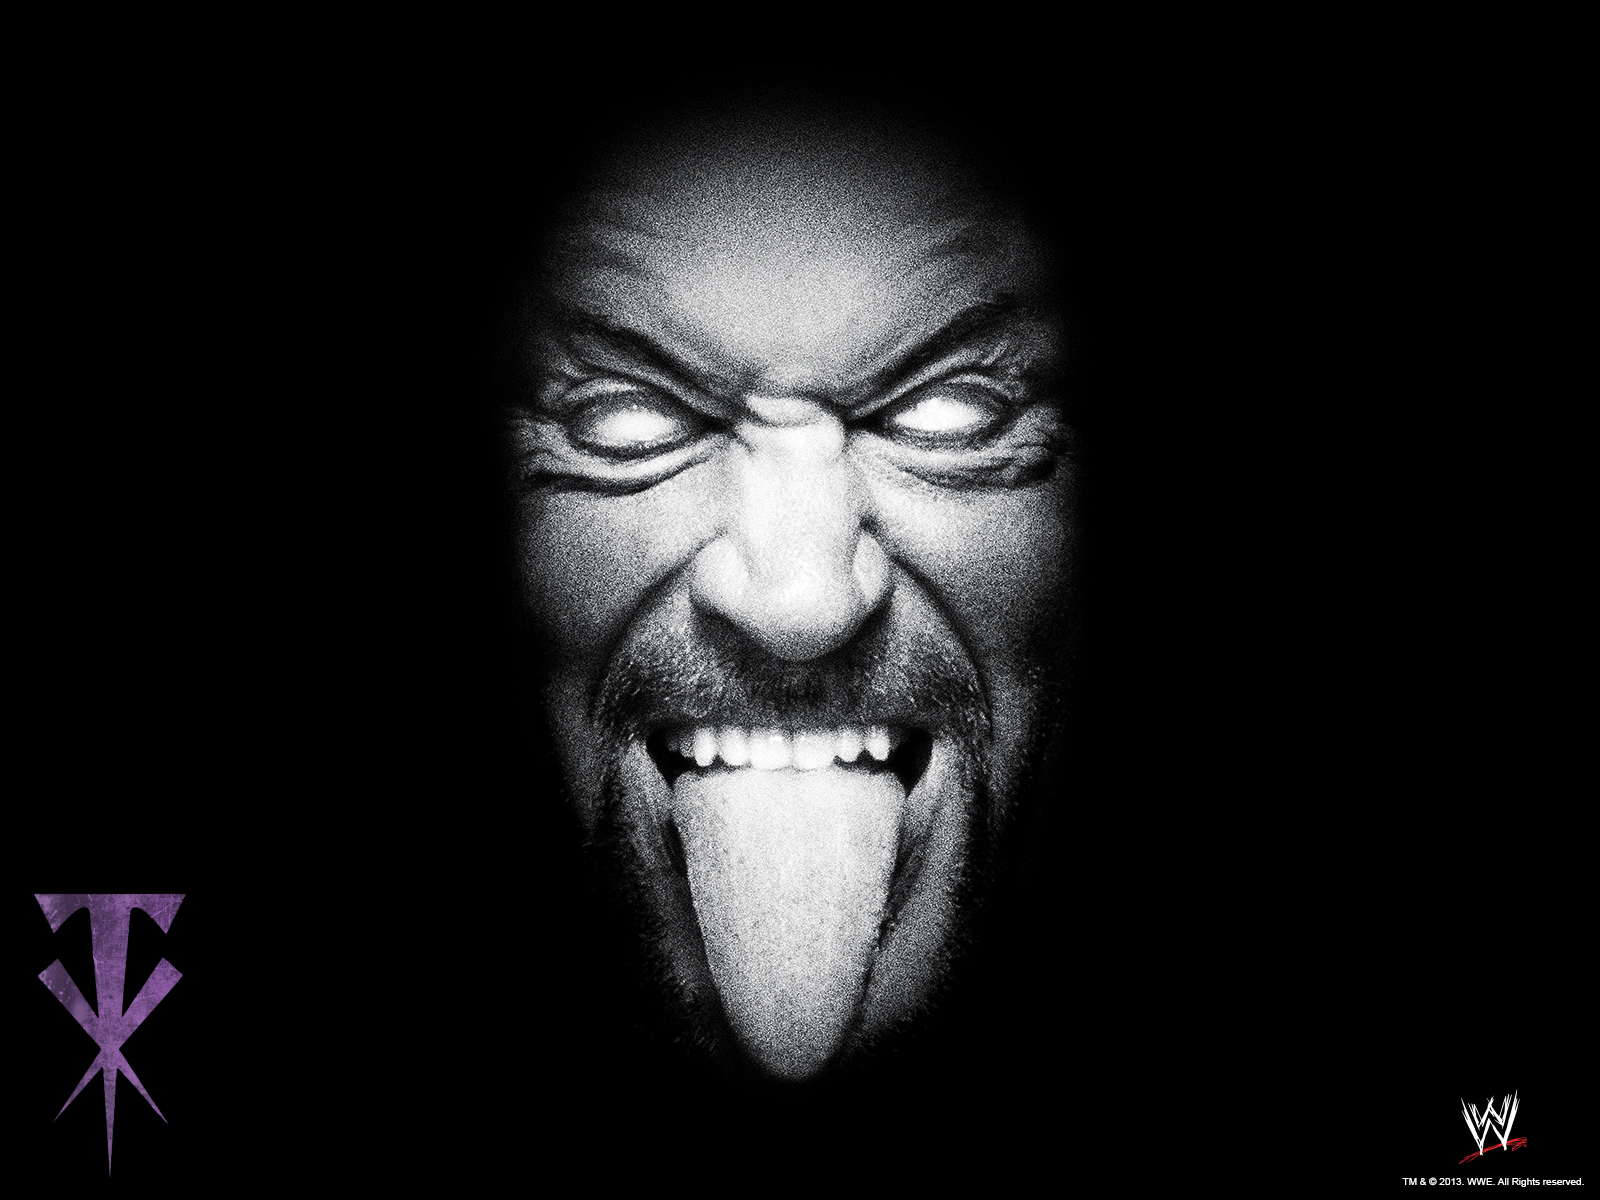 1000+ images about My fav wwe person the undertaker!! on Pinterest   The undertaker